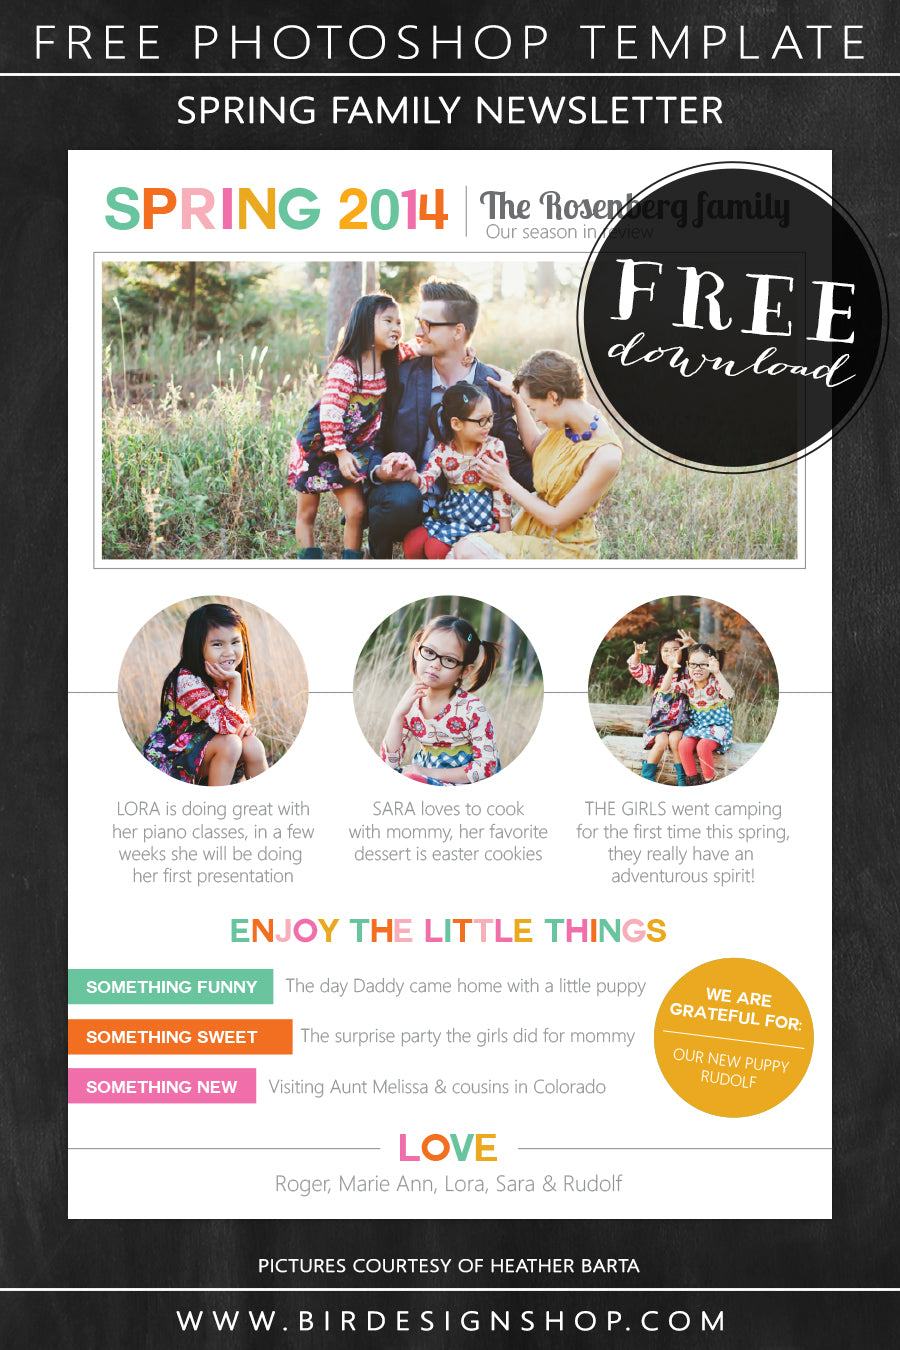 Spring family newsletter - free photoshop template